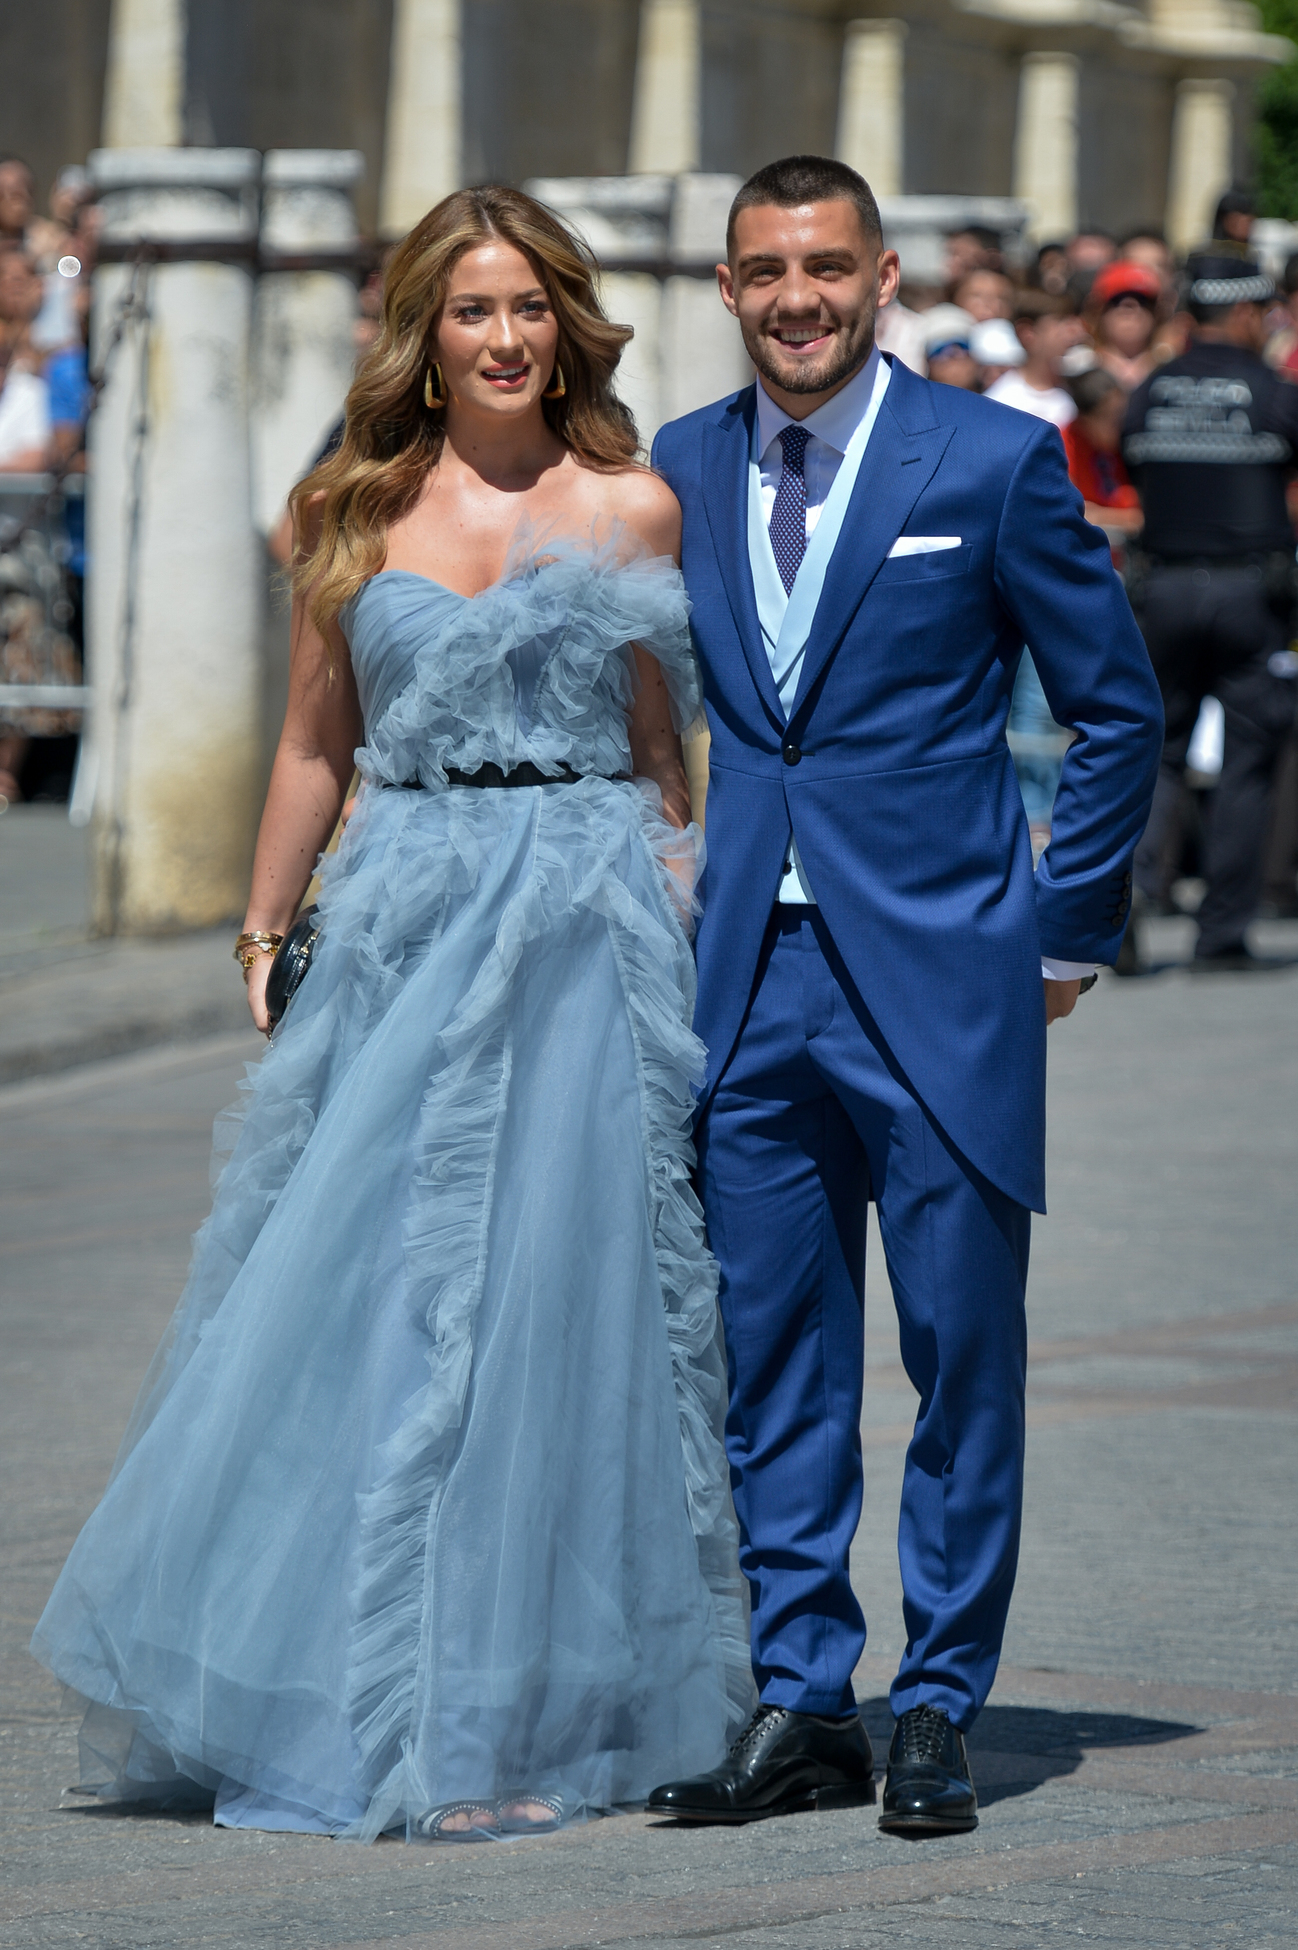 SEVILLE, SPAIN - JUNE 15: Mateo Kovacic and Izabel Andrijanic attend the wedding of real Madrid football player Sergio Ramos and Tv presenter Pilar Rubio at Seville's Cathedral on June 15, 2019 in Seville, Spain. (Photo by Aitor Alcalde/Getty Images)